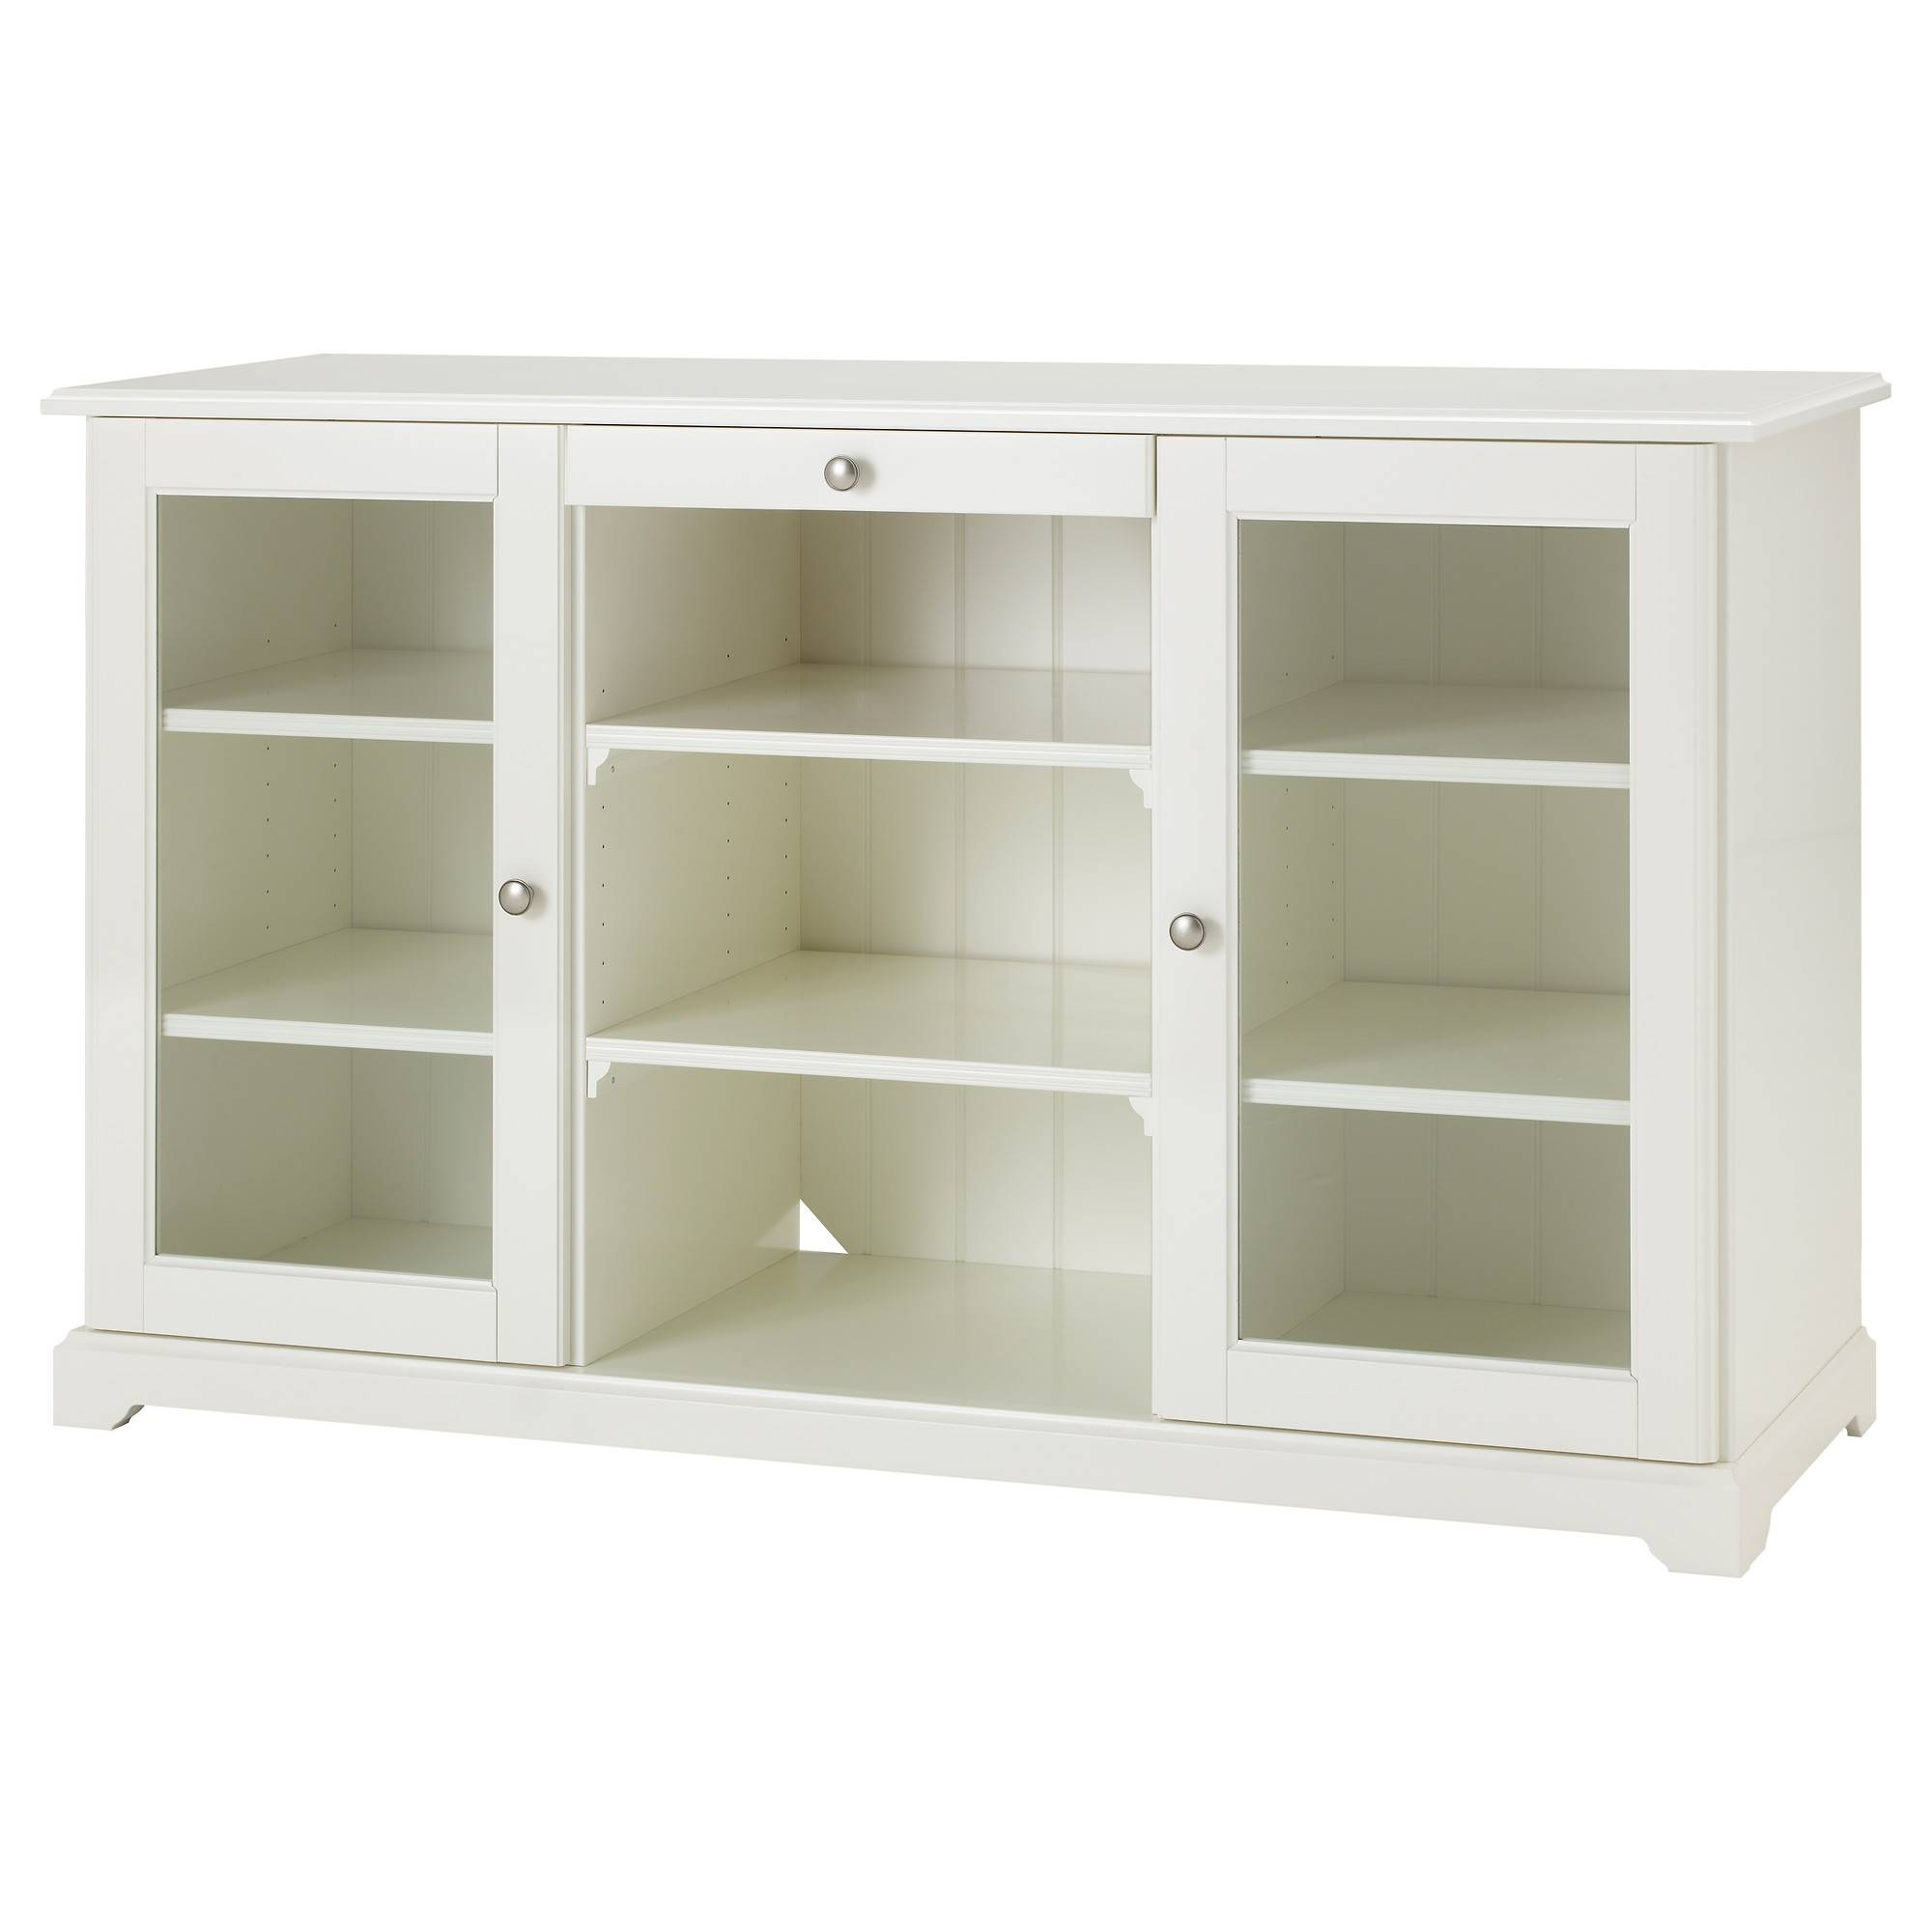 Buffet Tables & Sideboards - Ikea for White Kitchen Sideboards (Image 3 of 30)